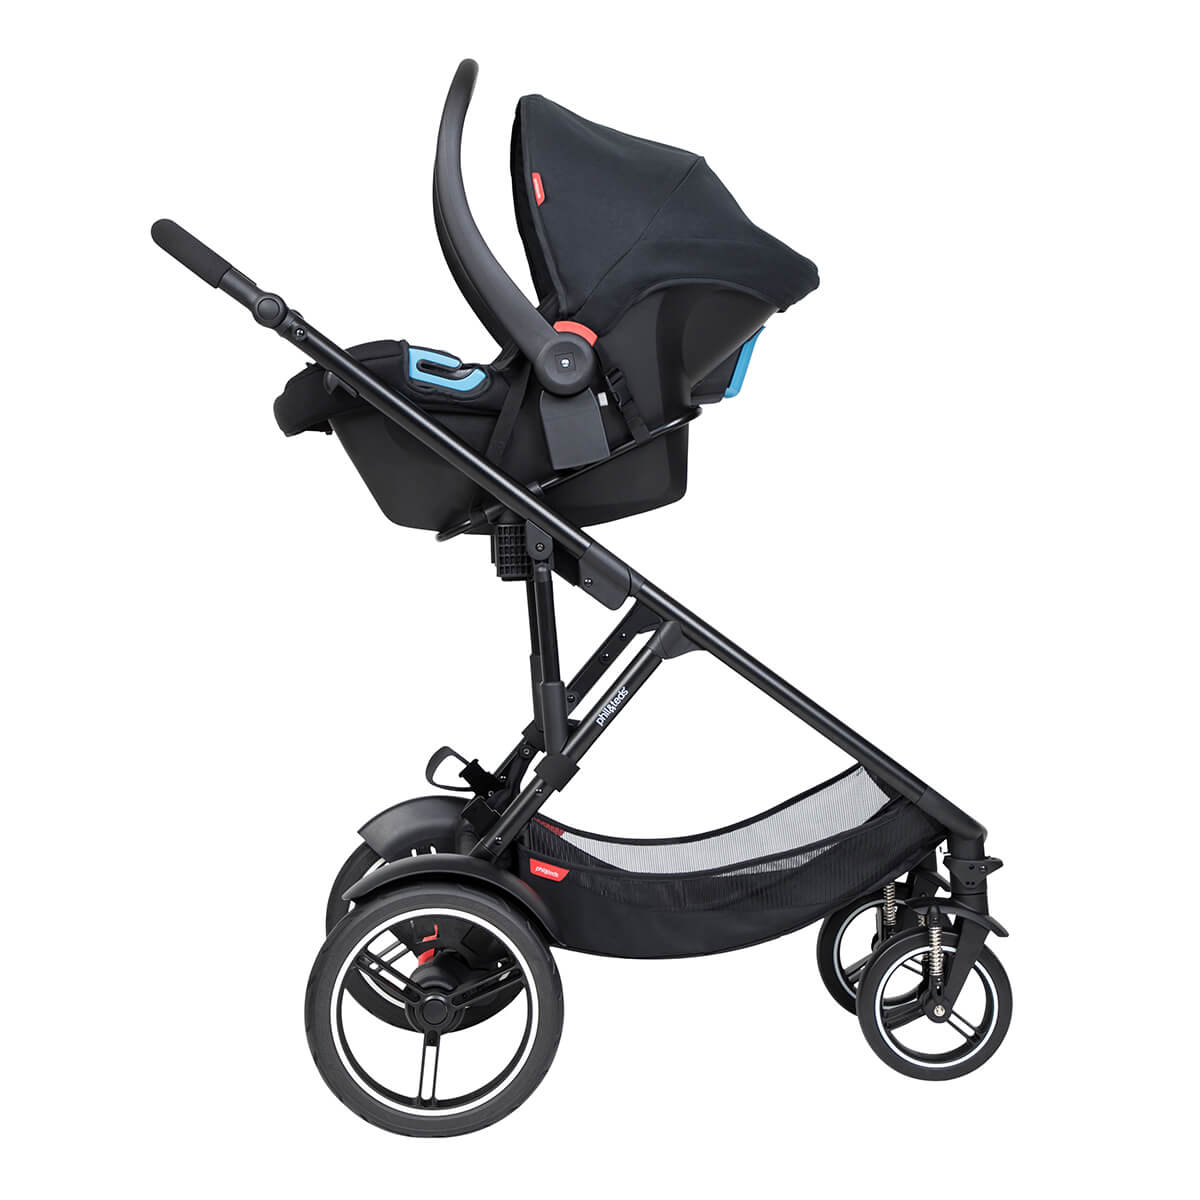 https://cdn.accentuate.io/4546159280233/19119322529897/philteds-voyager-buggy-with-travel-system-in-parent-facing-mode-v1625778580135.jpg?1200x1200